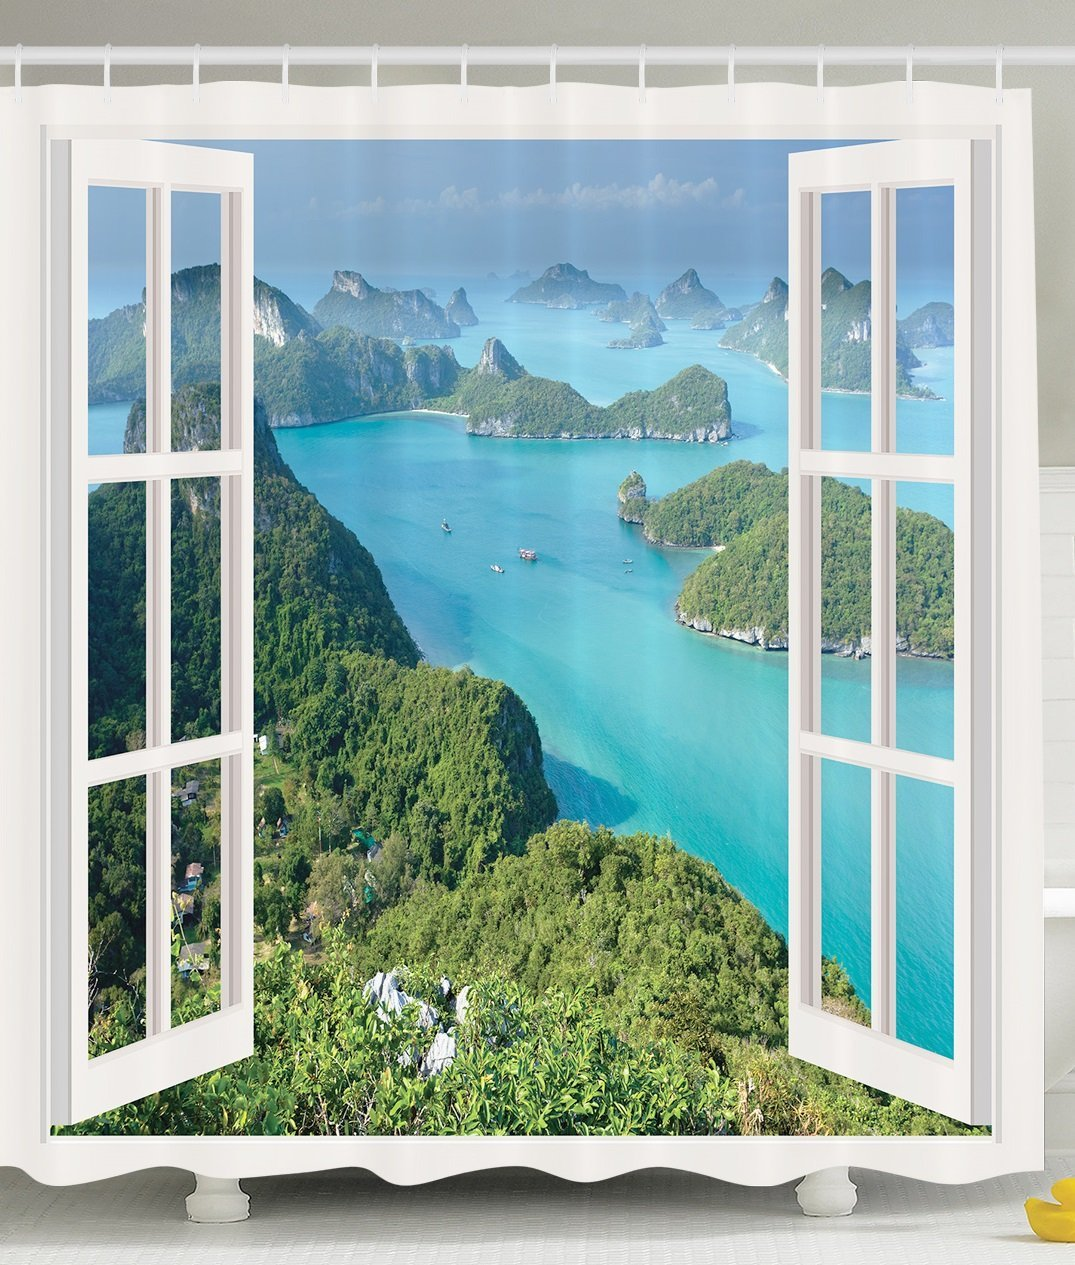 Decor for Bathroom Tropical Island Mountain Ocean Theme White Wooden Window Panorama with Scenic View Scene